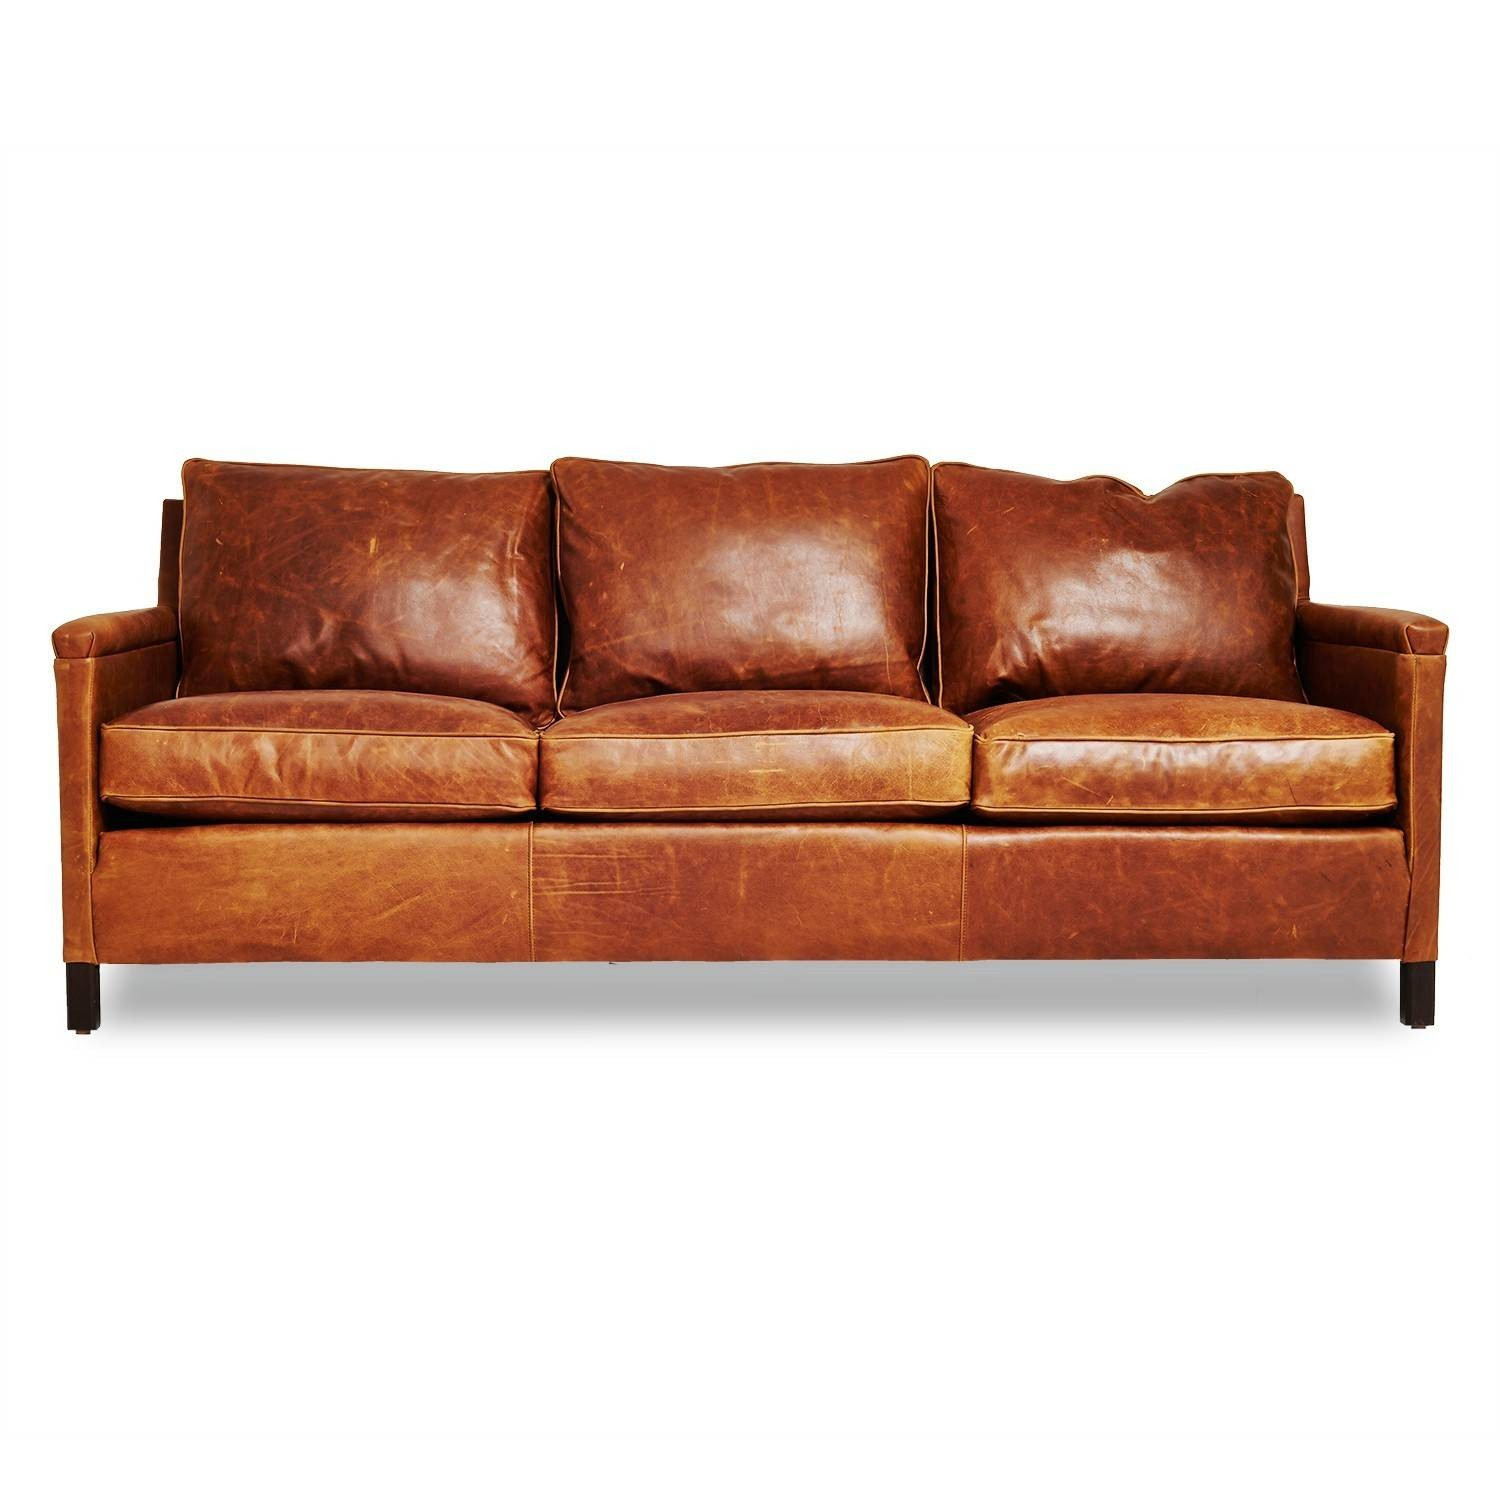 Best Leather sofa Beautiful Best Leather sofa Couch for Living Room sofa Ideas with Leather Model